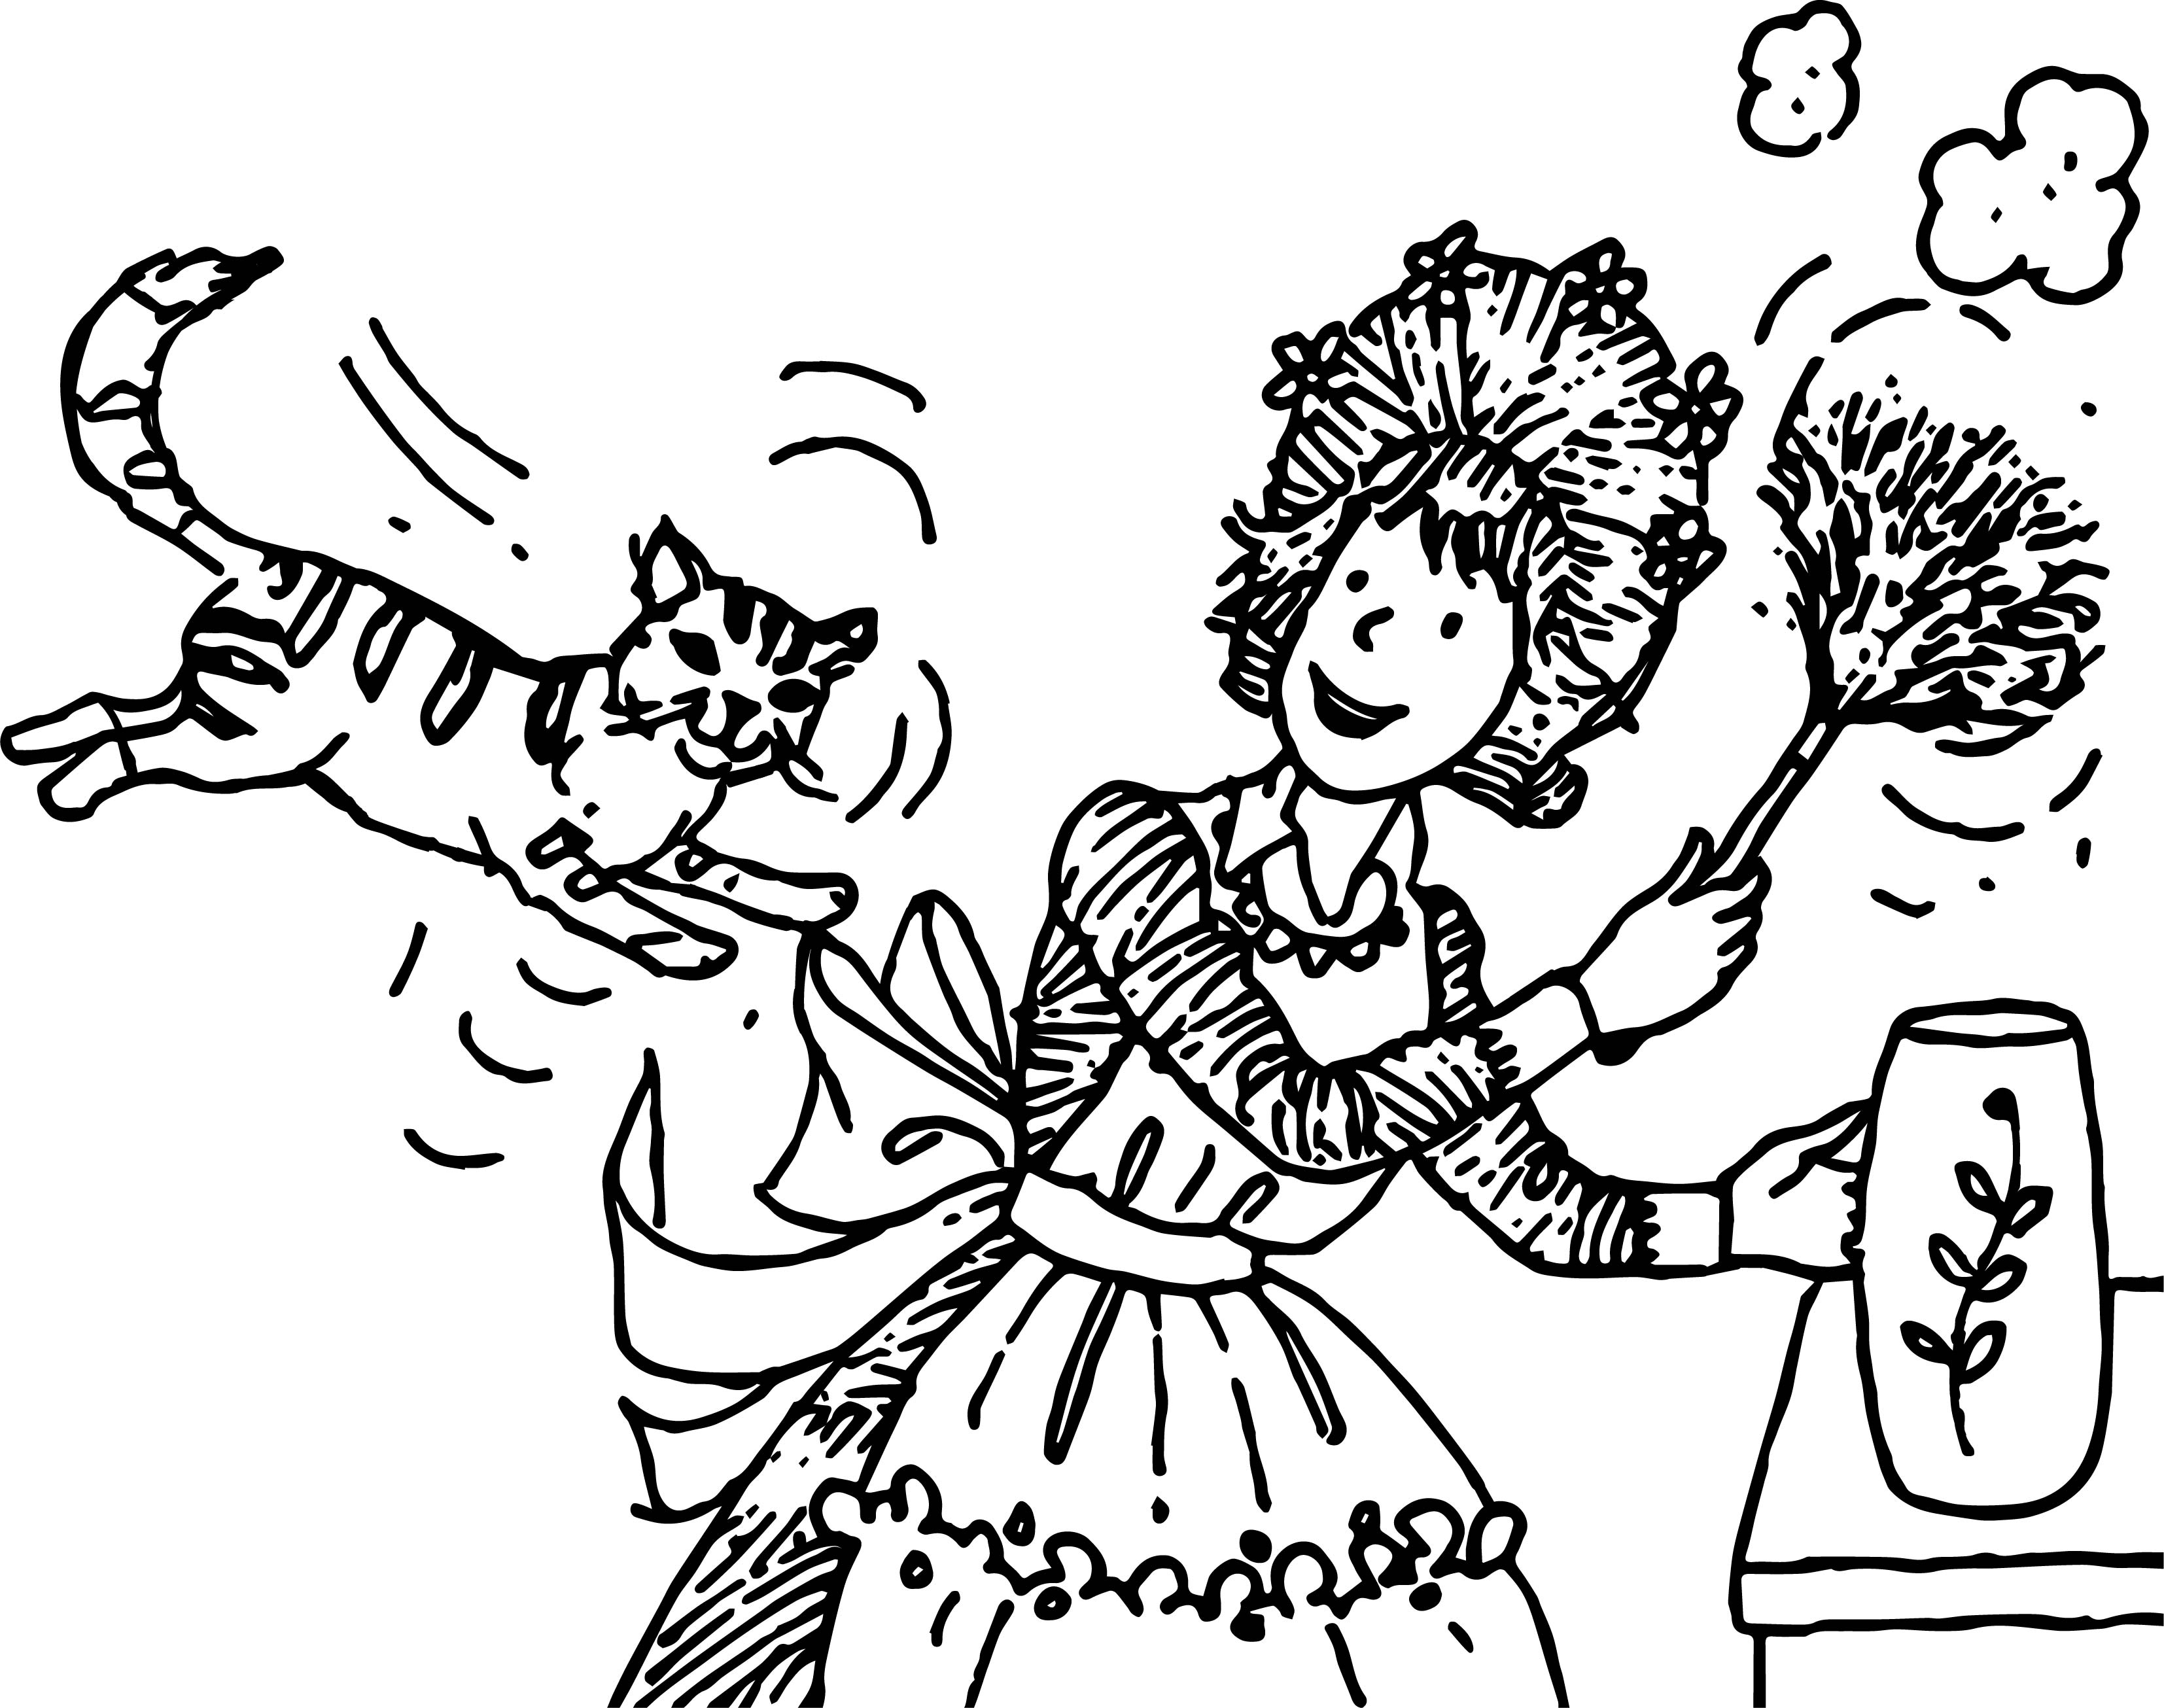 Uncategorized Amelia Bedelia Coloring Pages amelia bedelia and cat coloring page wecoloringpage page